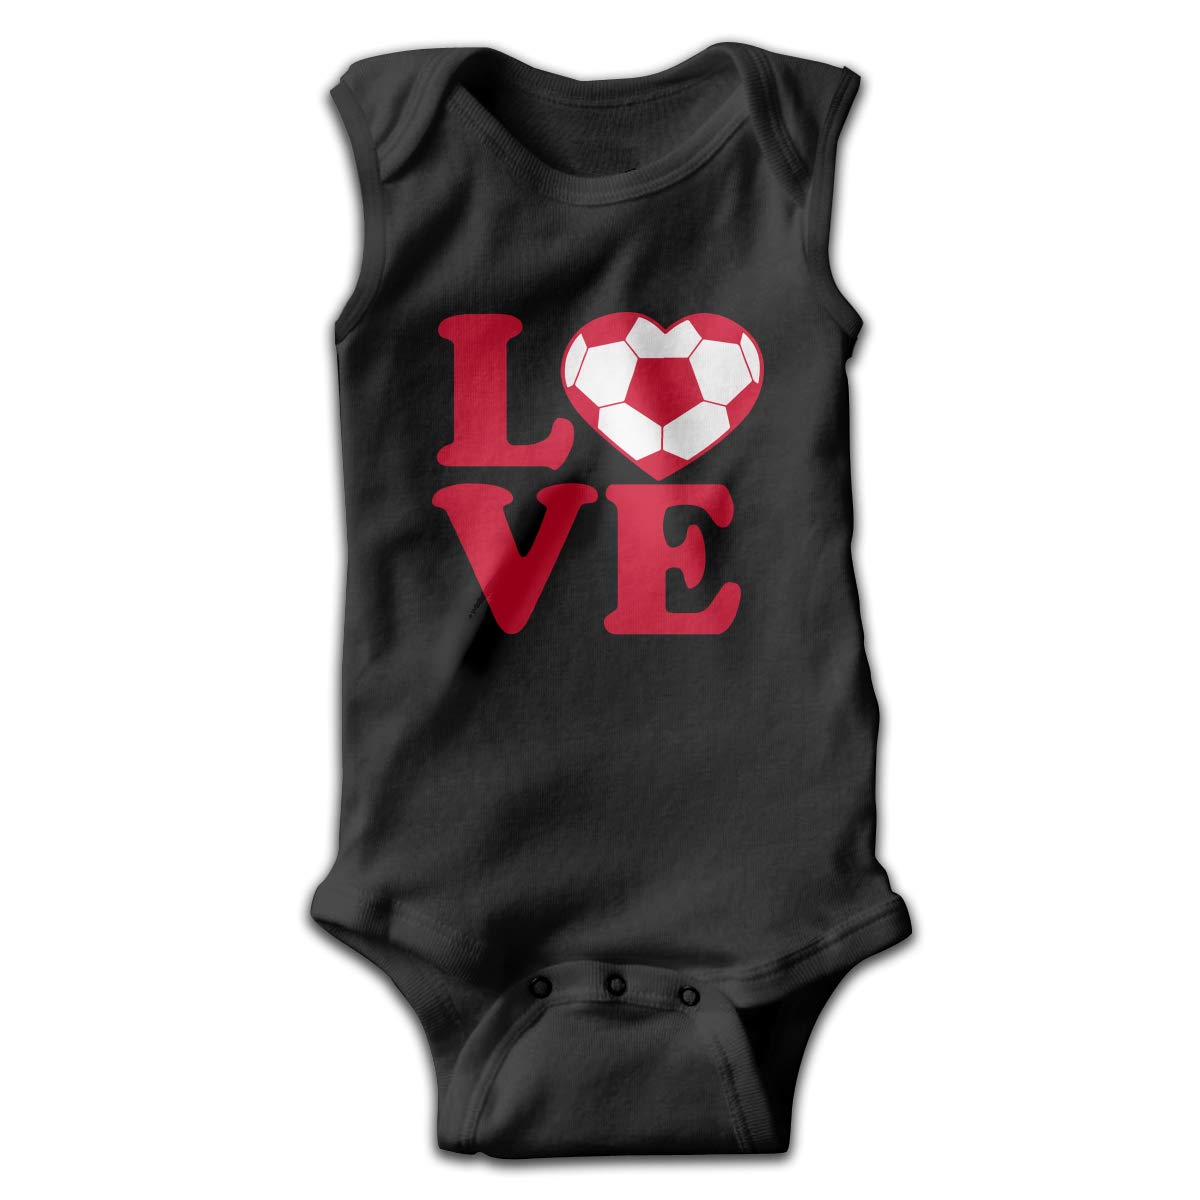 Toddler I Love Soccer Sleeveless Baby Clothes Playsuit Suit 0-24 Months